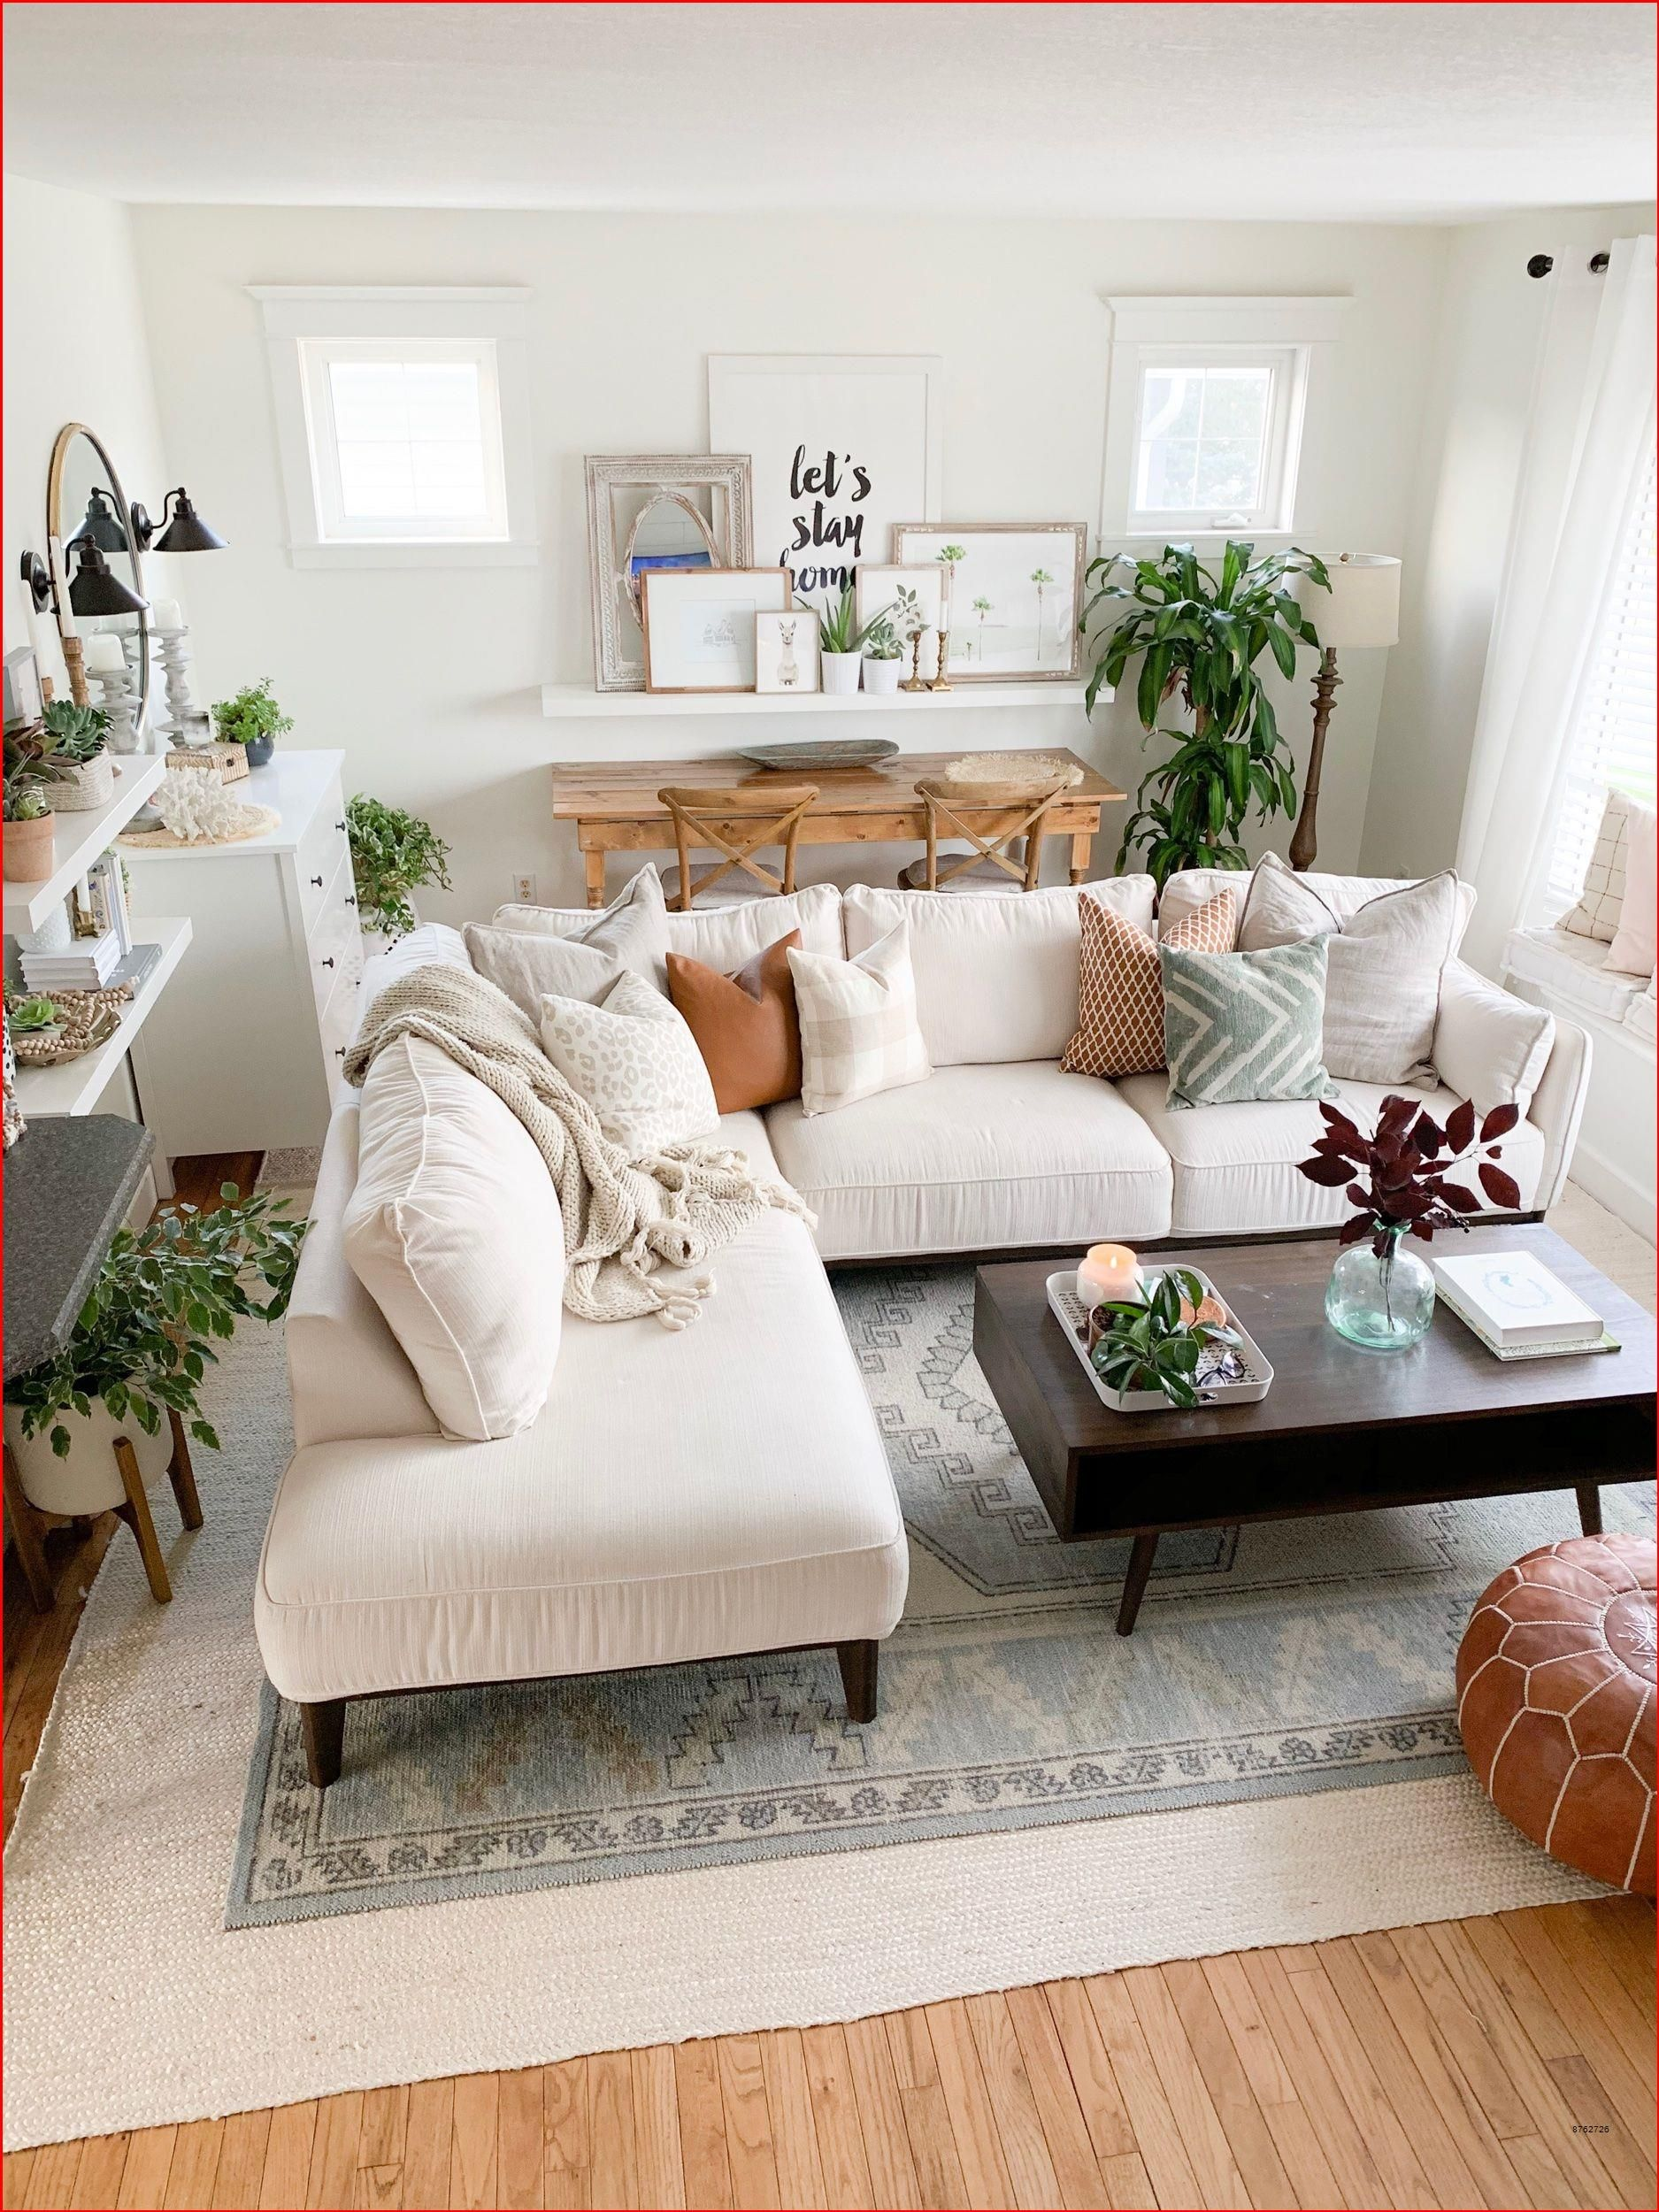 How To Choose Between A Sectional Or Sofa 804 Sycamore Cozy Living Room Design Living Room Decor Apartment Small Space Living Room